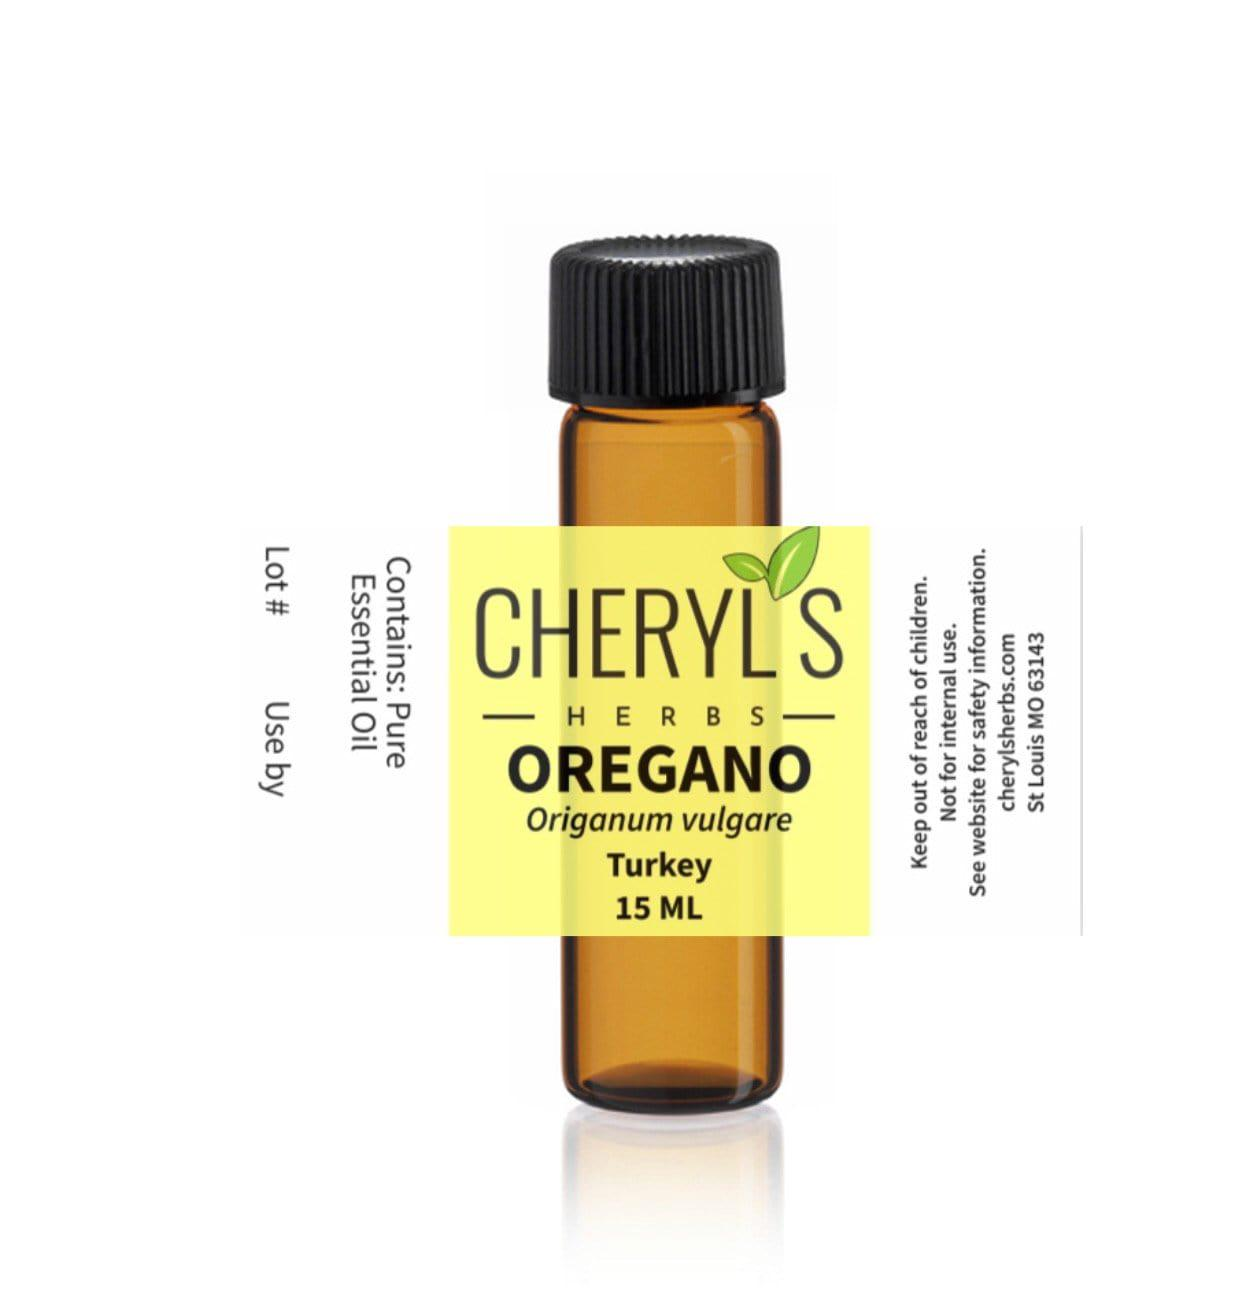 OREGANO 90% Carvacrol ESSENTIAL OIL - Cheryls Herbs